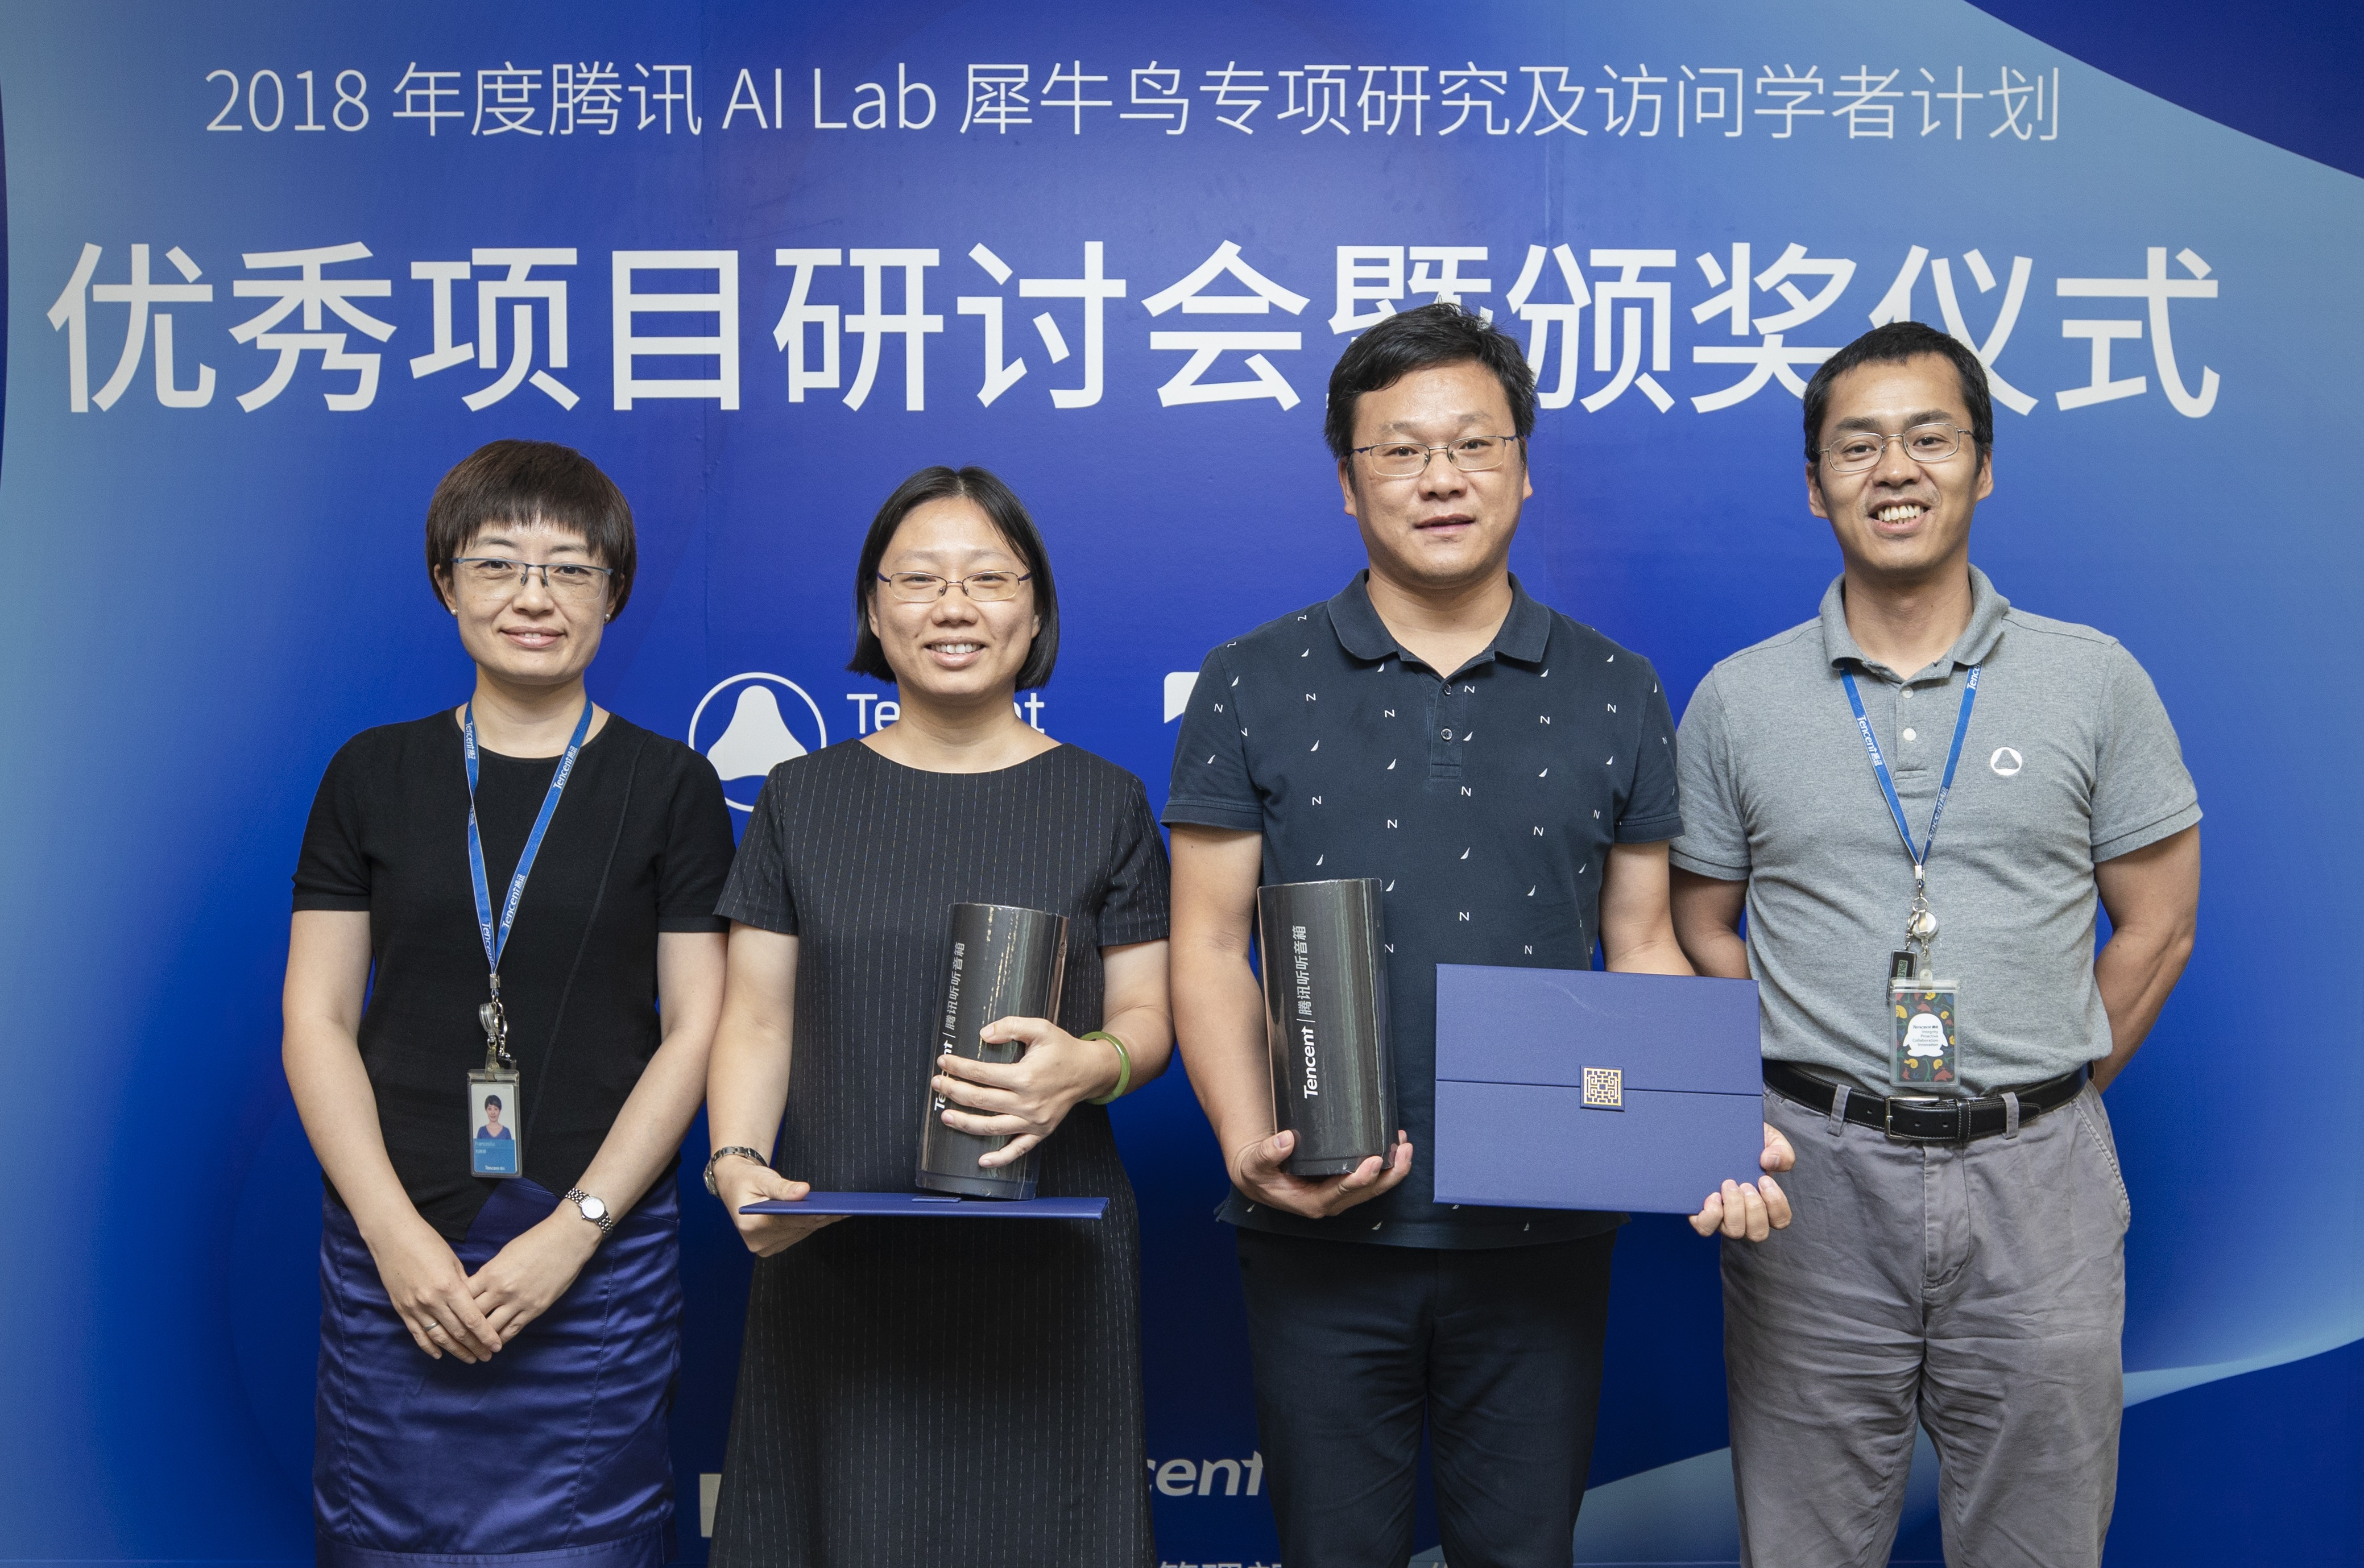 Prof. Jeffrey Xu Yu and Prof. Hong Cheng won the Application Innovation Award in Tencent AI Lab Rhino-Bird Focused Research Program 2018